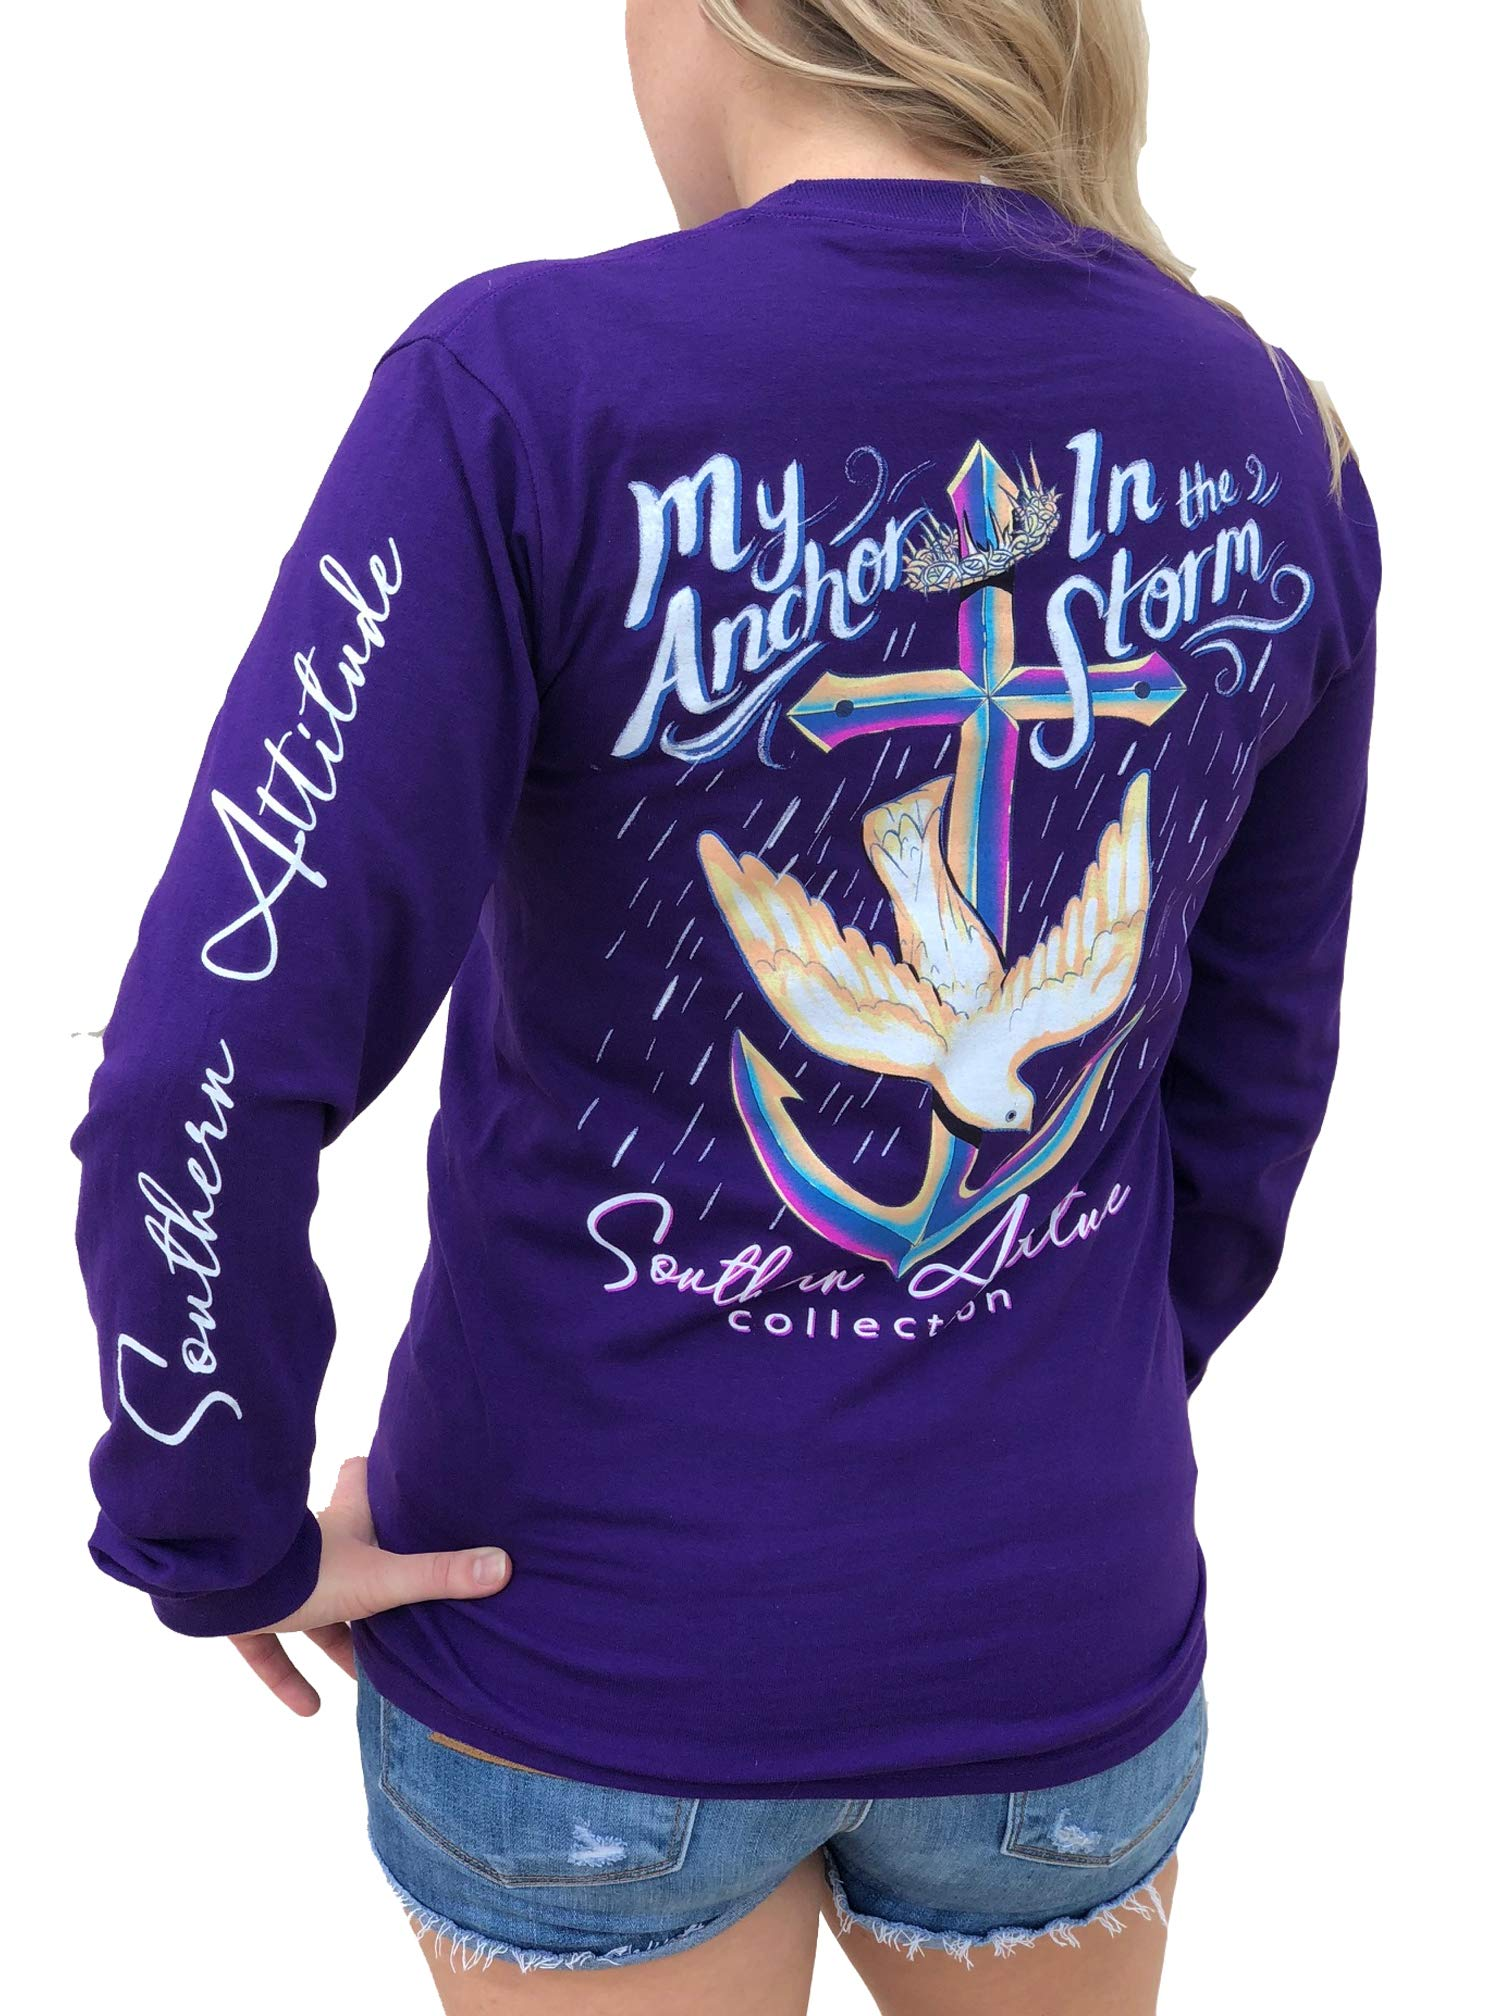 Southern Attitude My Anchor in The Storm Cross Anchor Purple Women's Long Sleeve Shirt